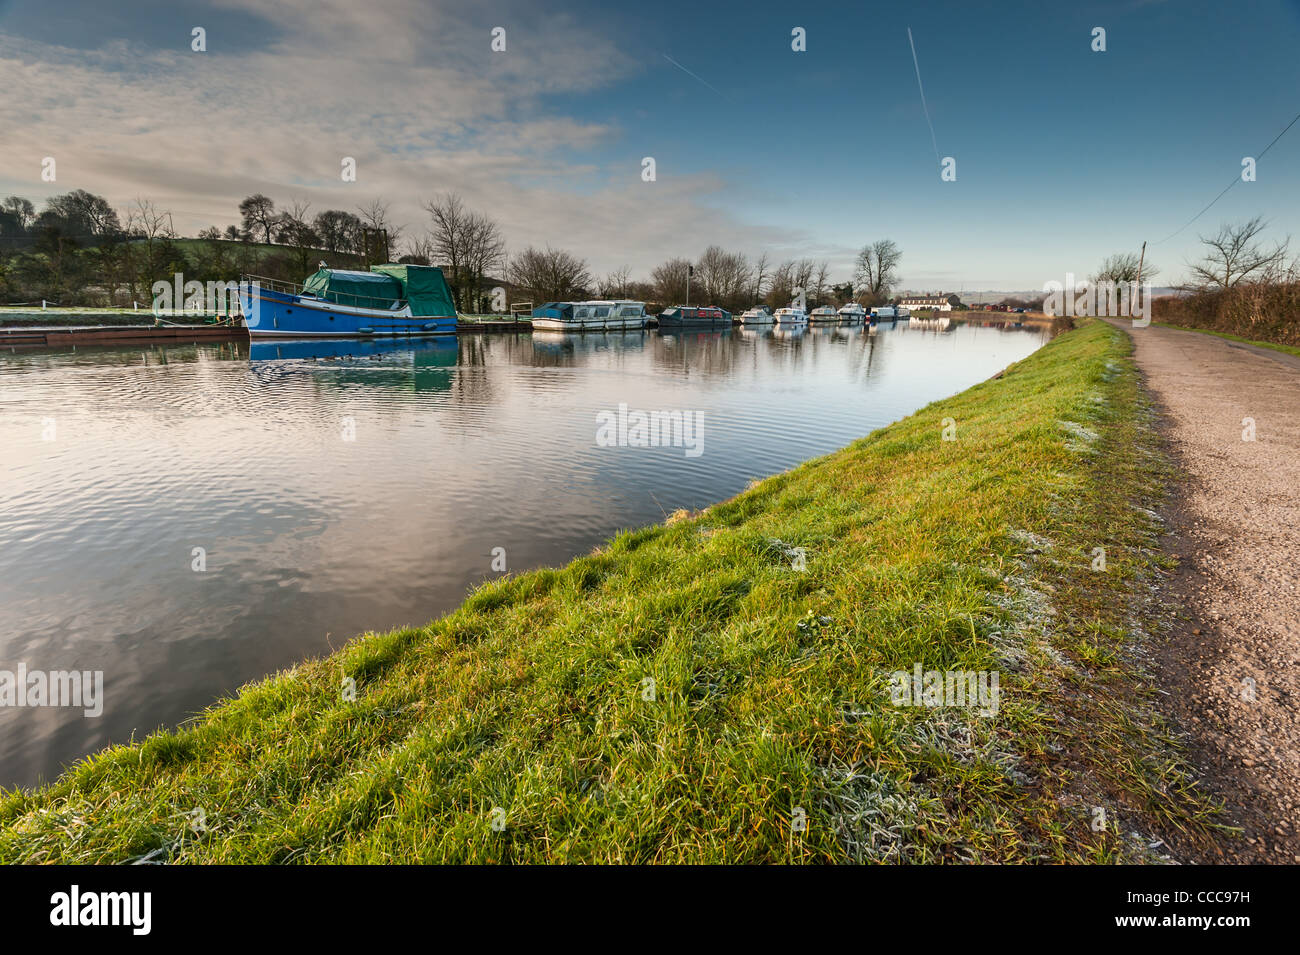 Boats on a canal with a frosty towpath and blue cloudy sky - Stock Image